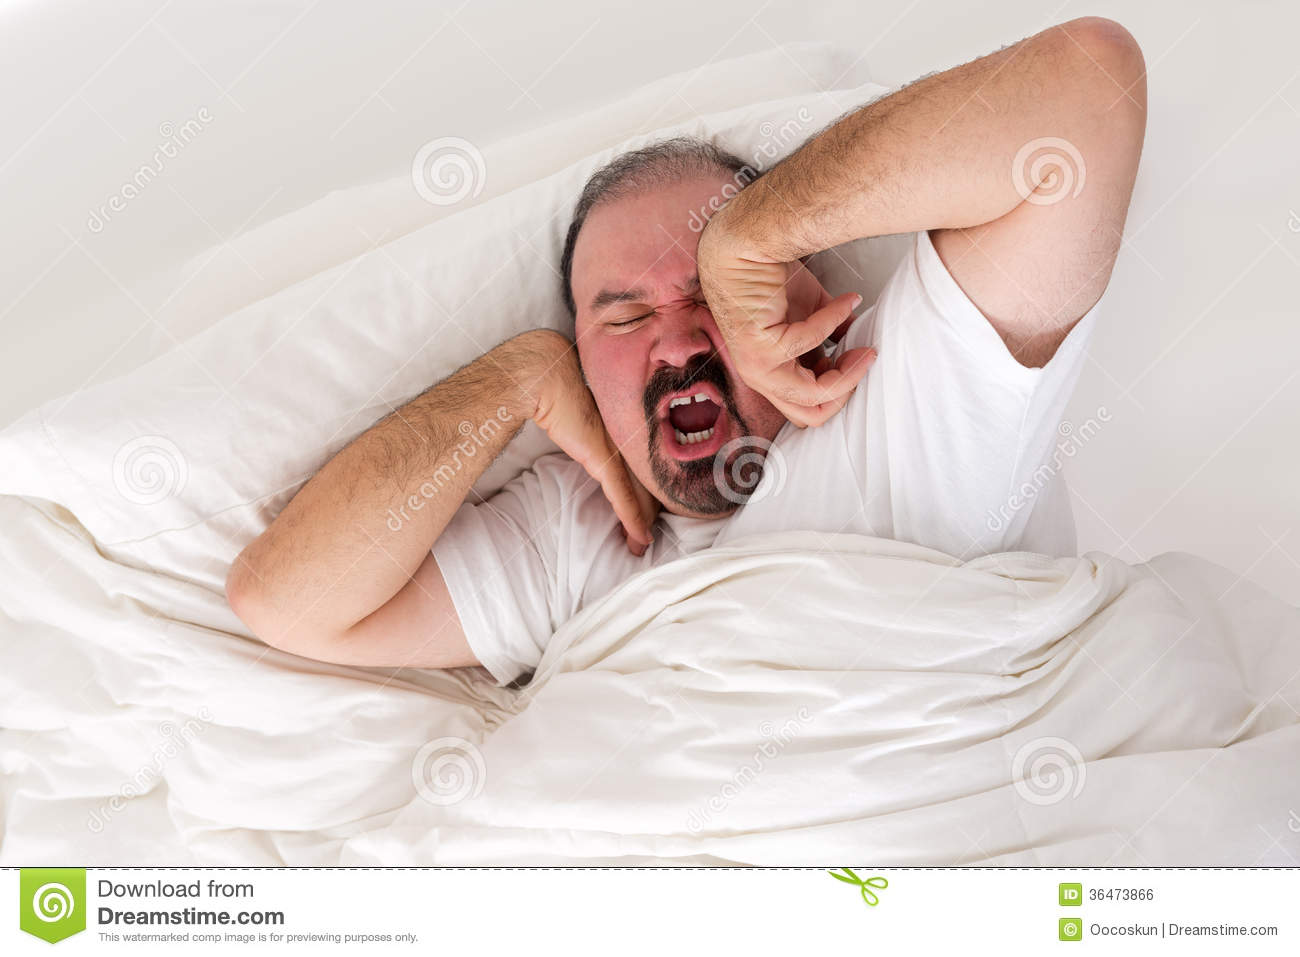 Tired Man Stretching In An Effort To Wake Up Royalty Free Stock Image ...